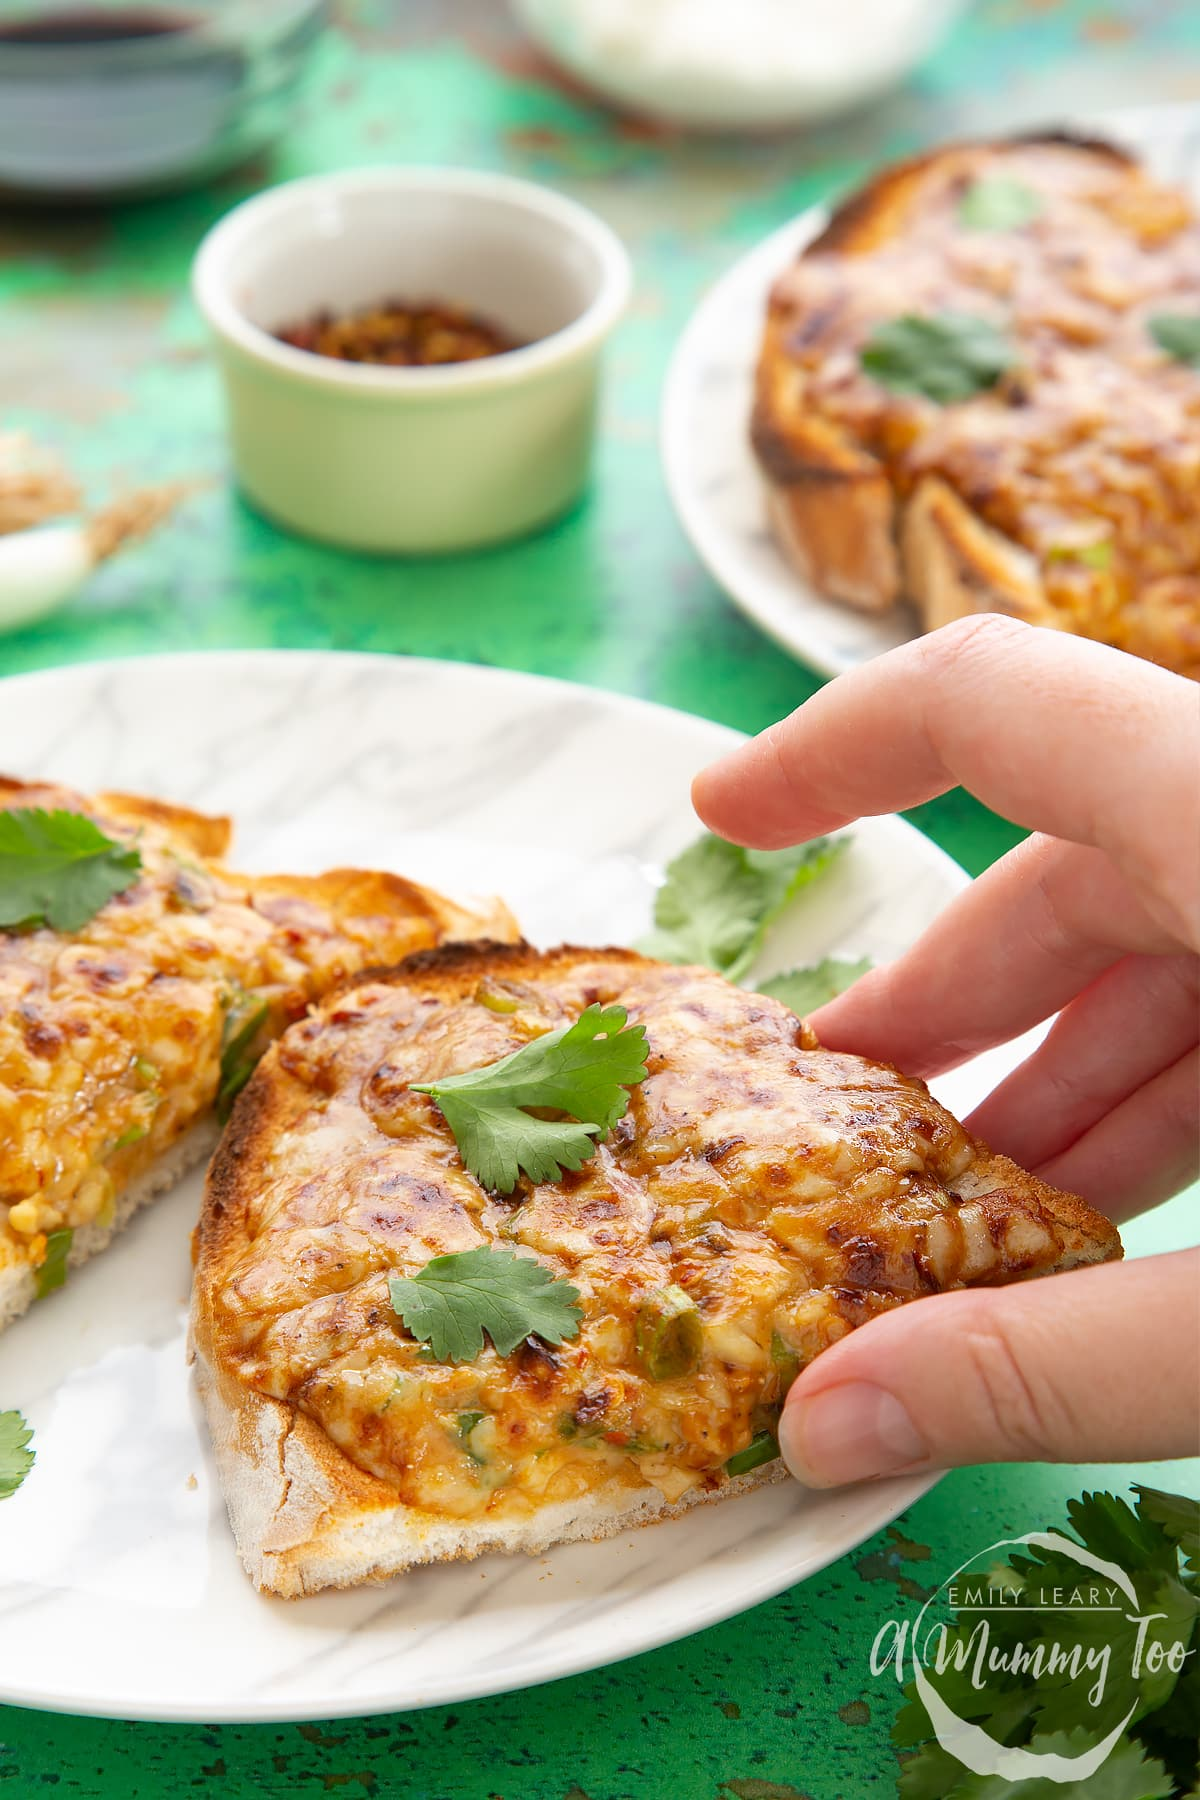 Two pieces of chilli cheese toast  on a white marbled plate, scattered with coriander. A hand reaches to take a piece.